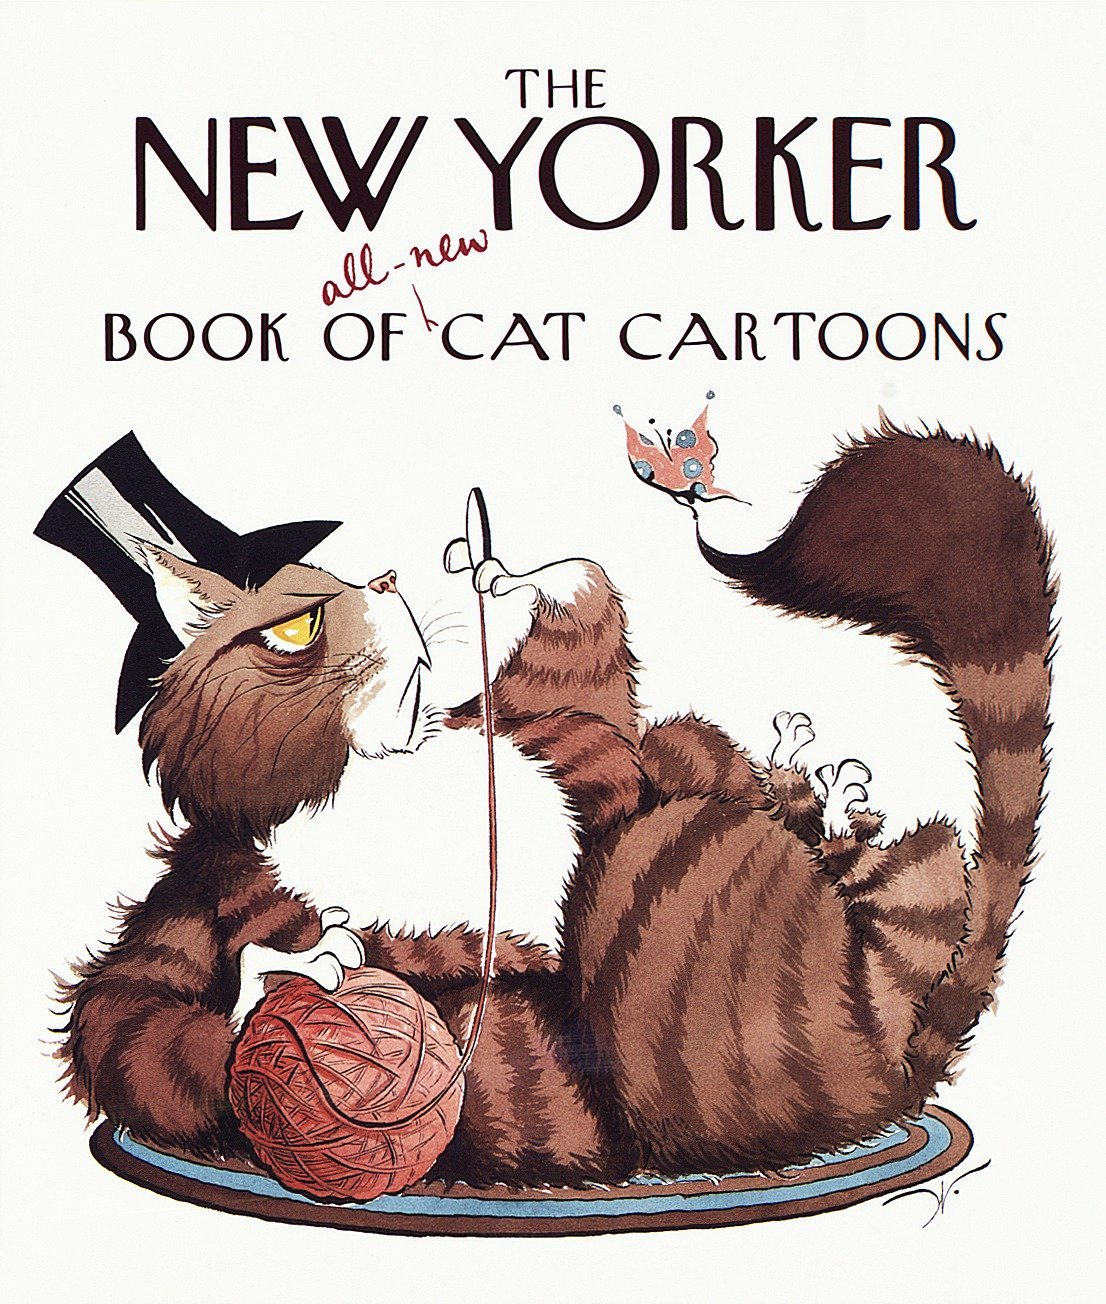 The New Yorker Book Of All New Cat Cartoons New Yorker Series The New Yorker 9780375401084 Amazon Com Books